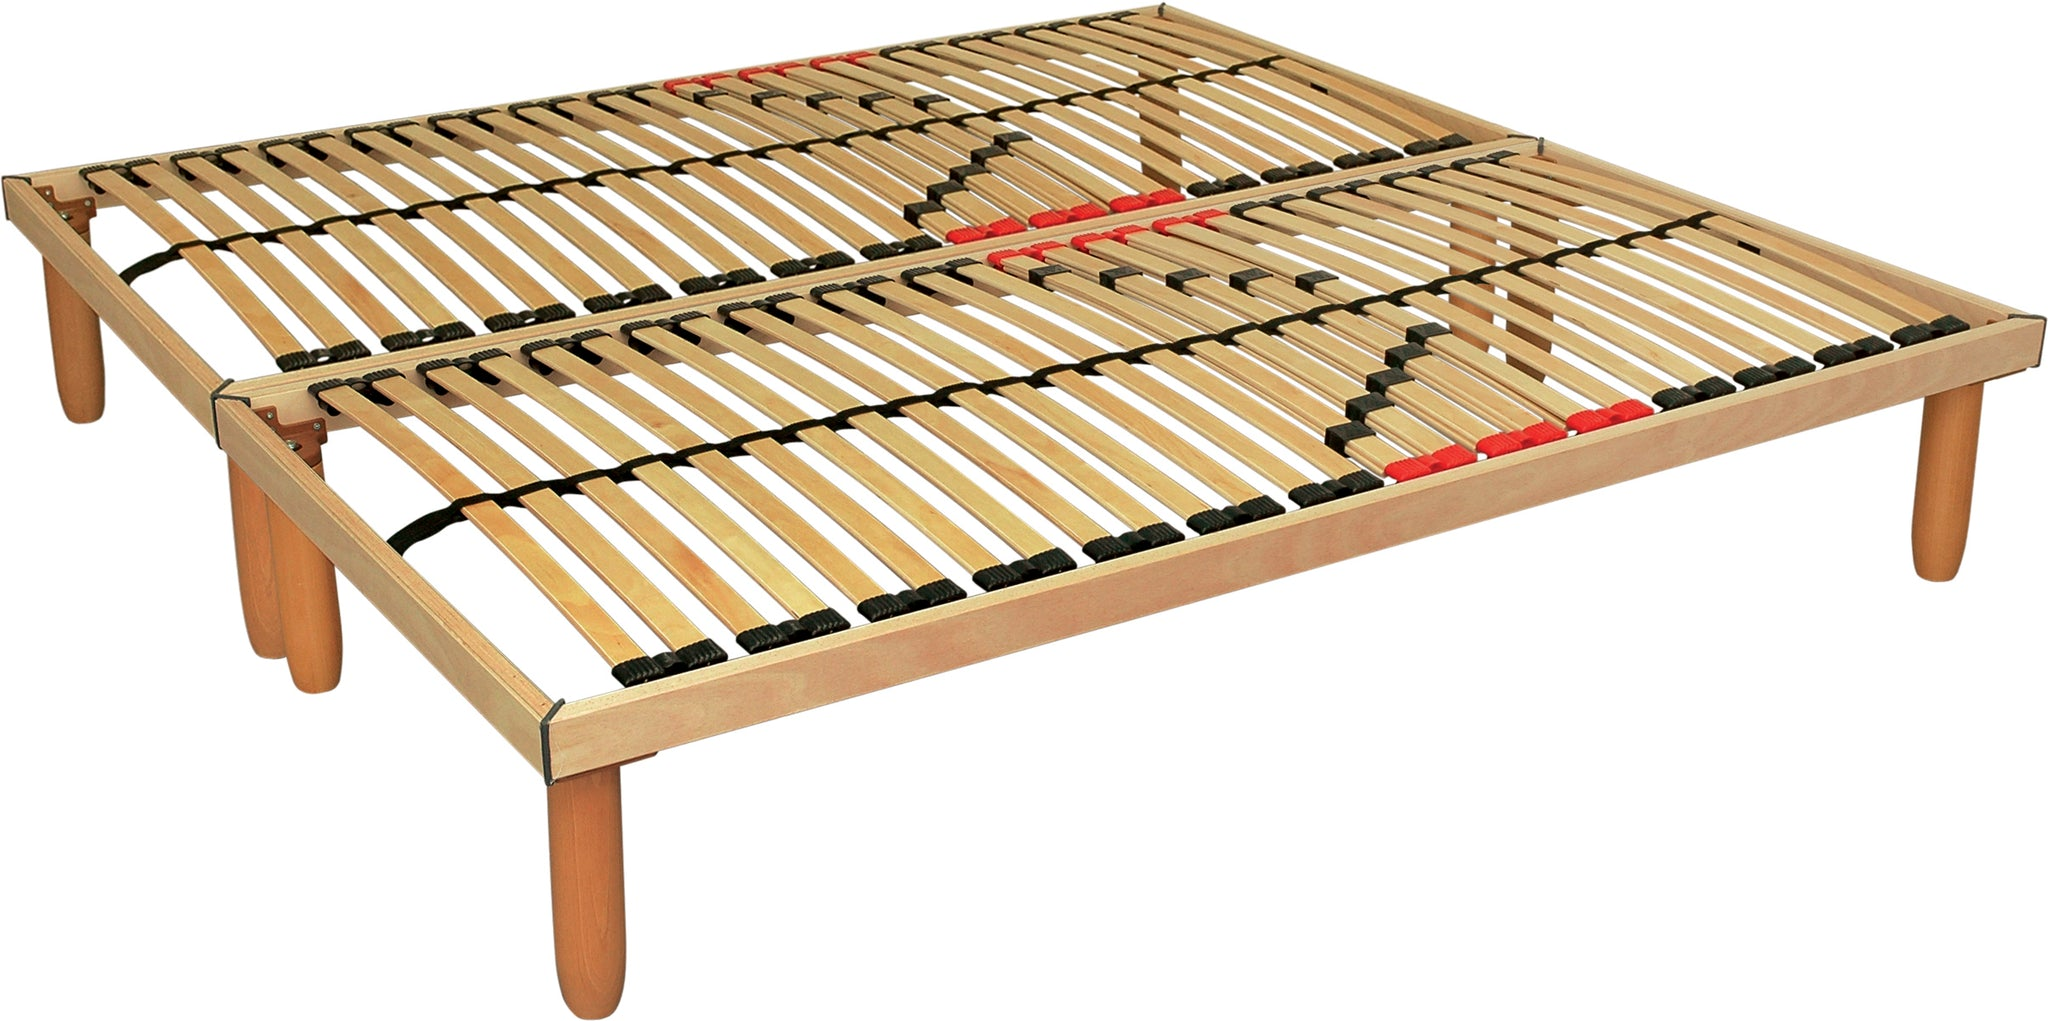 European ergonomic wooden slat bed - Dorinca